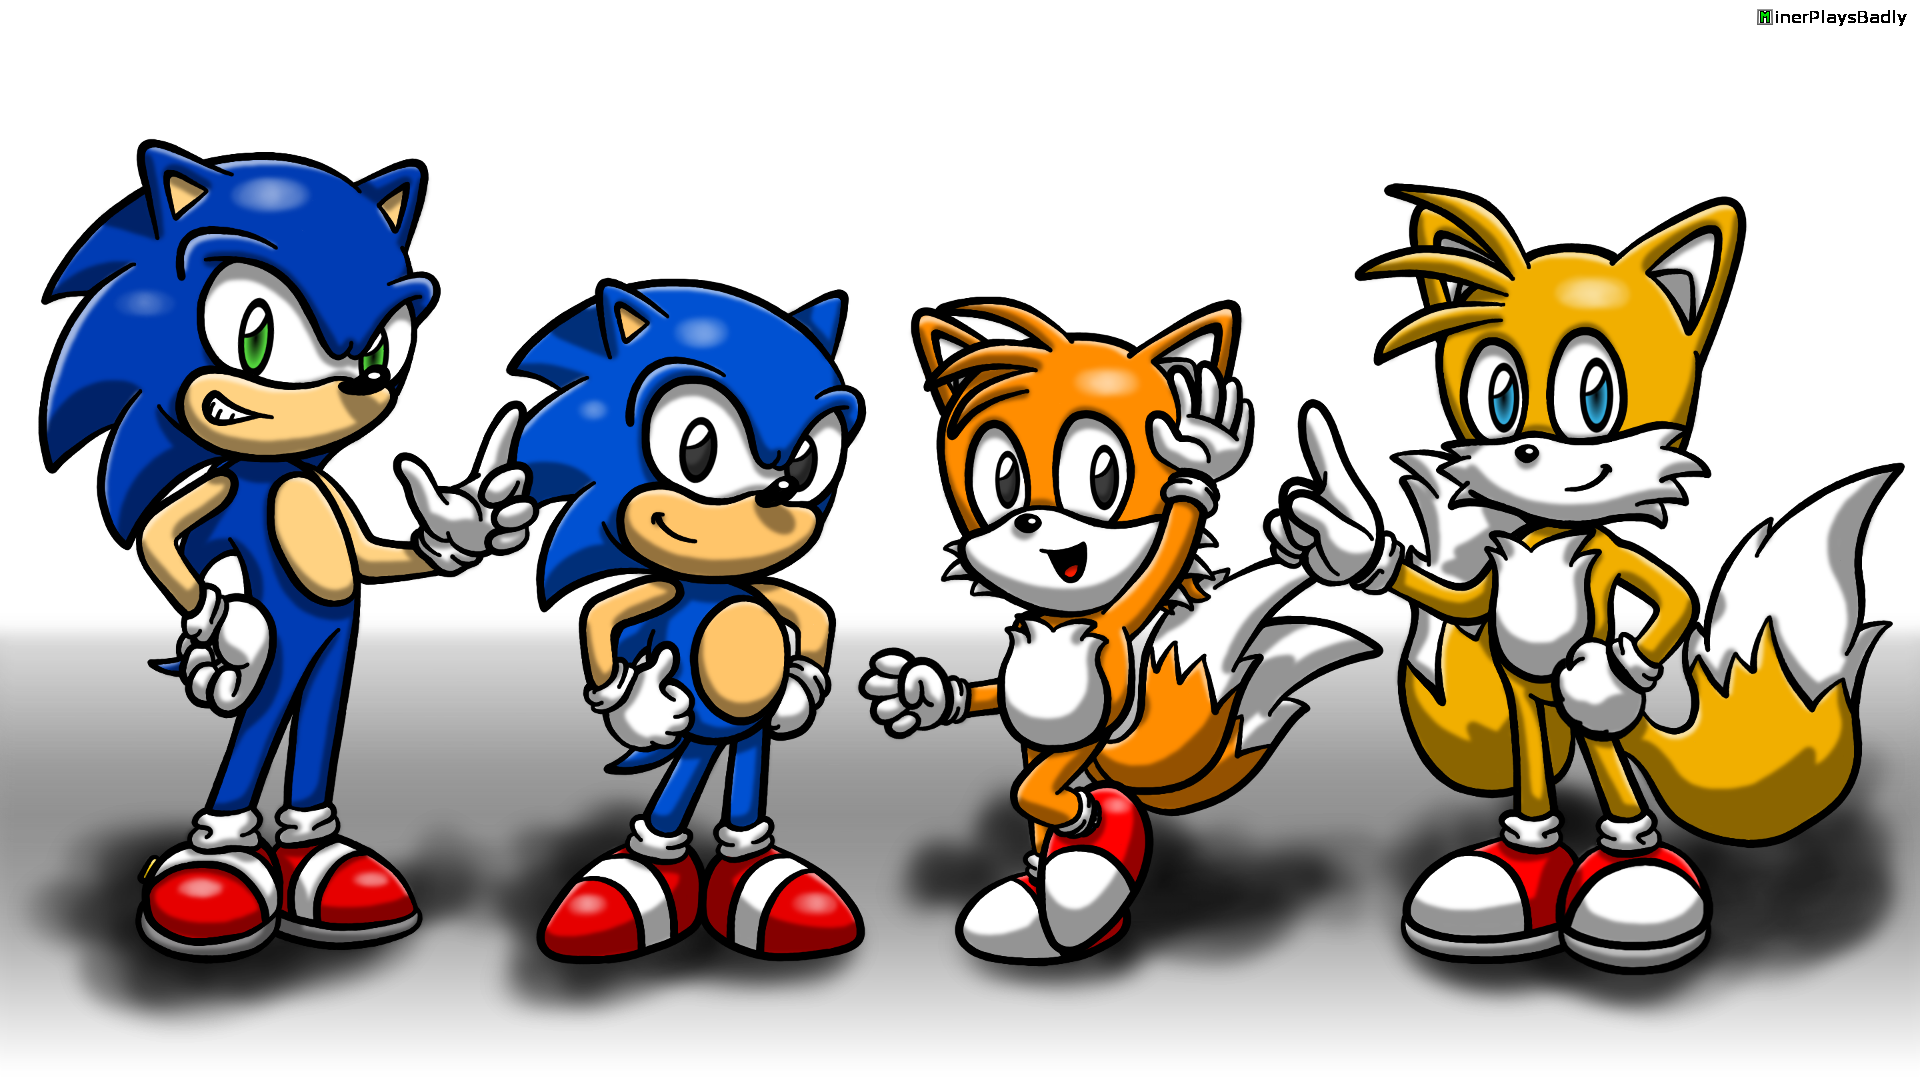 Archived Post Sonic Classic Modern Oct 2017 Jan 2018 By Minerplaysbadly On Newgrounds